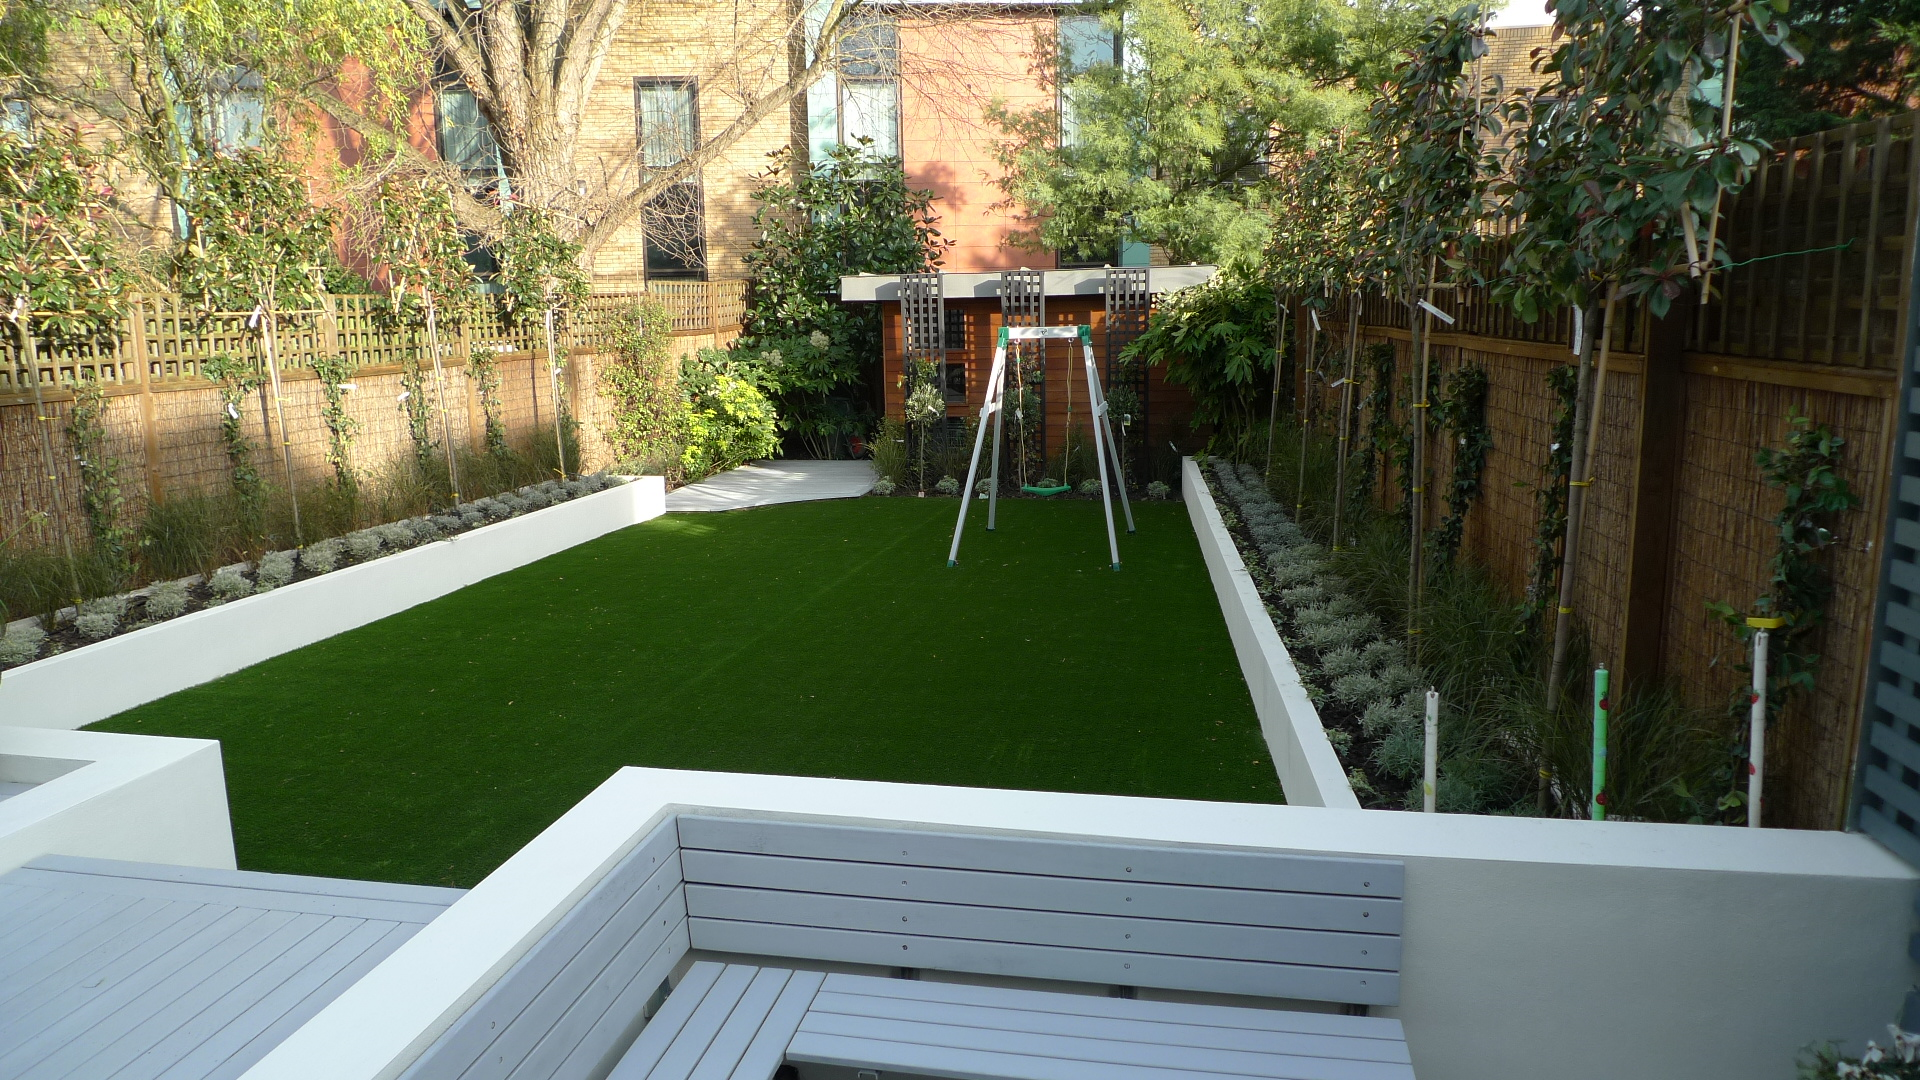 Modern garden design ideas london london garden design for Modern garden design